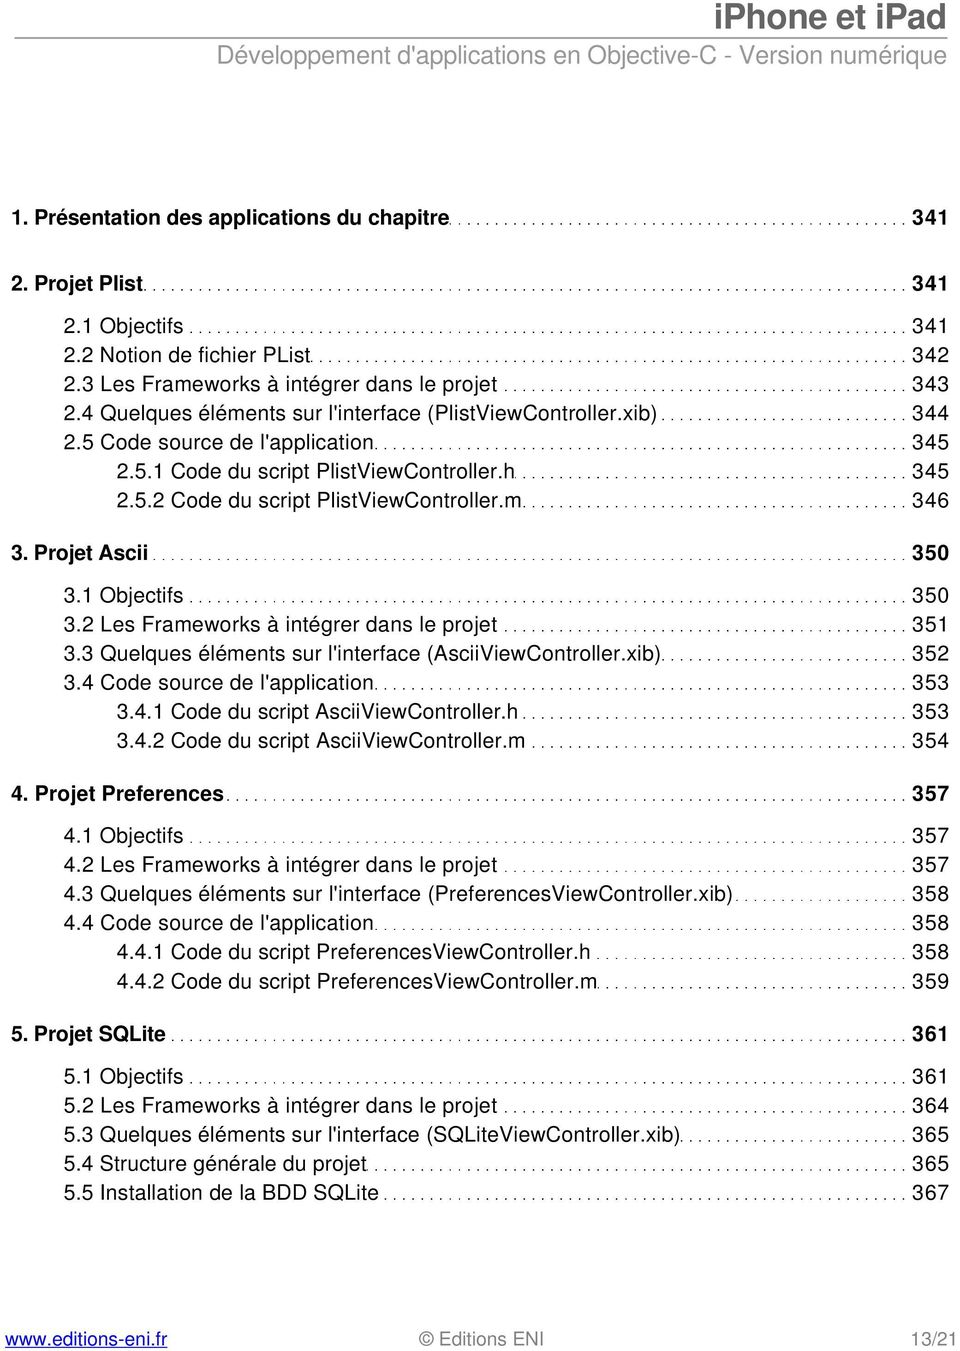 Projet Ascii 350 3.1 Objectifs 350 3.2 Les Frameworks à intégrer dans le projet 351 3.3 Quelques éléments sur l'interface (AsciiViewController.xib) 352 3.4 Code source de l'application 353 3.4.1 Code du script AsciiViewController.